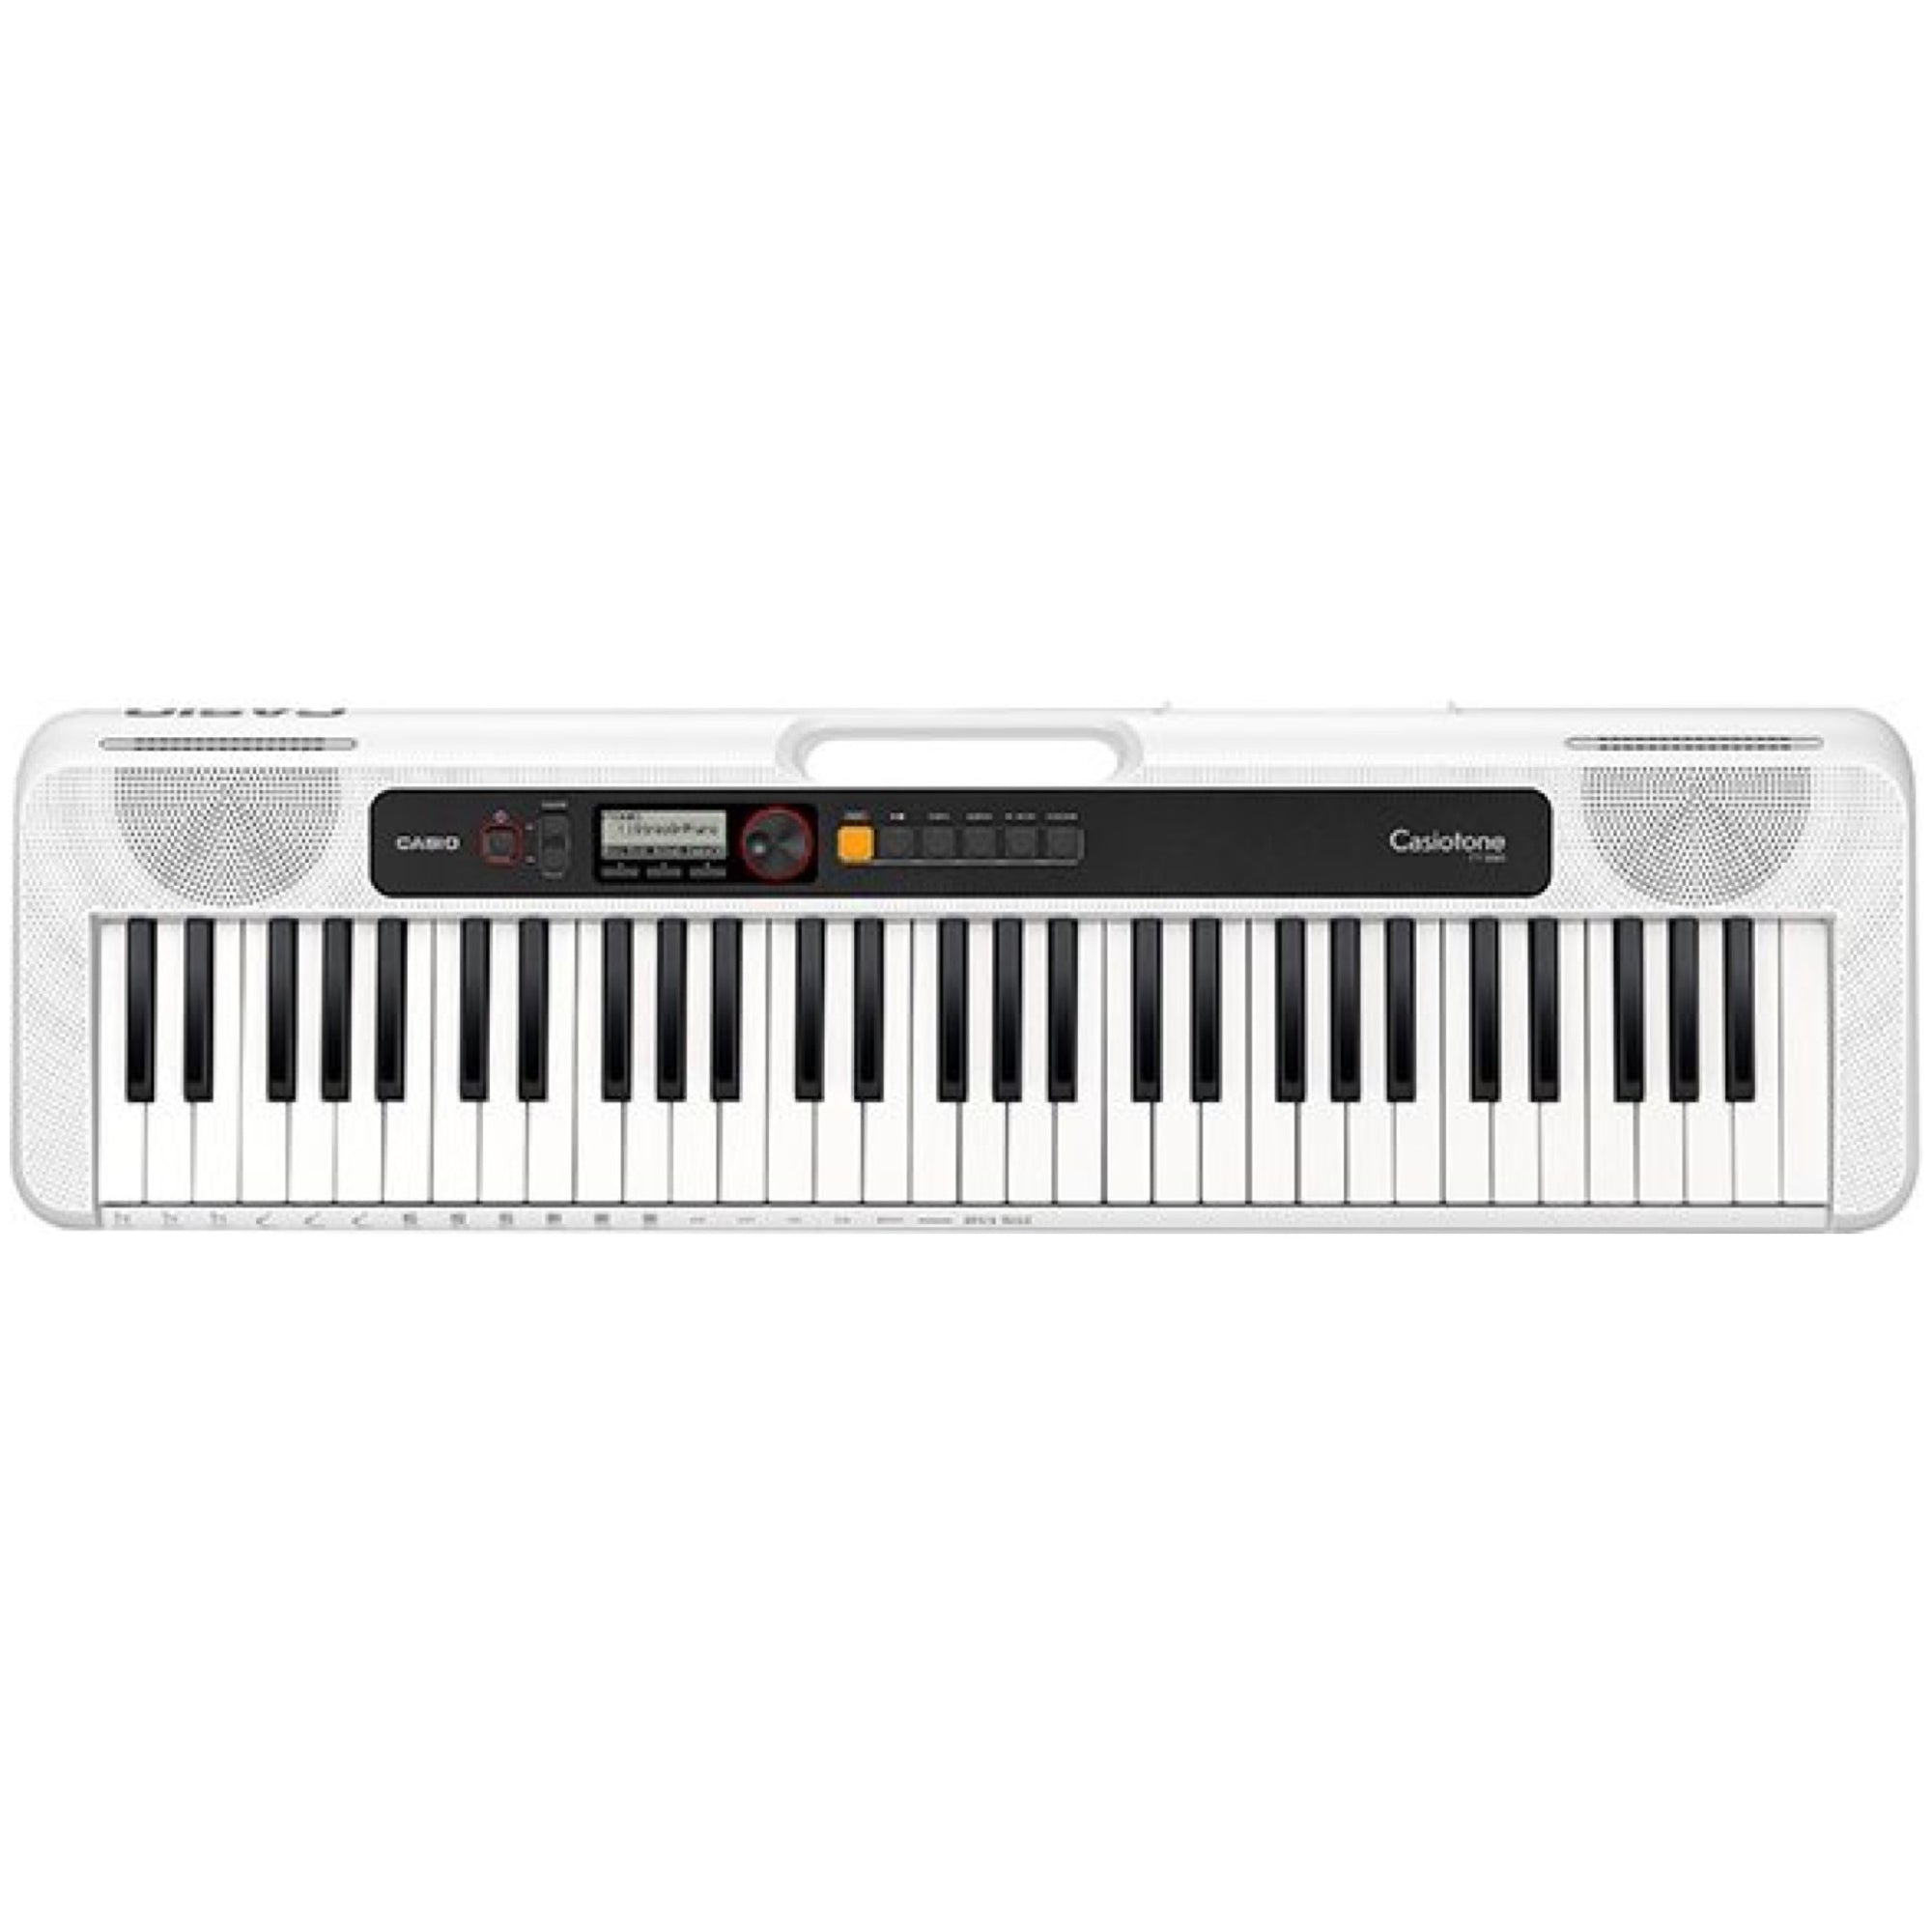 Casio CT-S200 Casiotone Portable Electronic Keyboard with USB, White